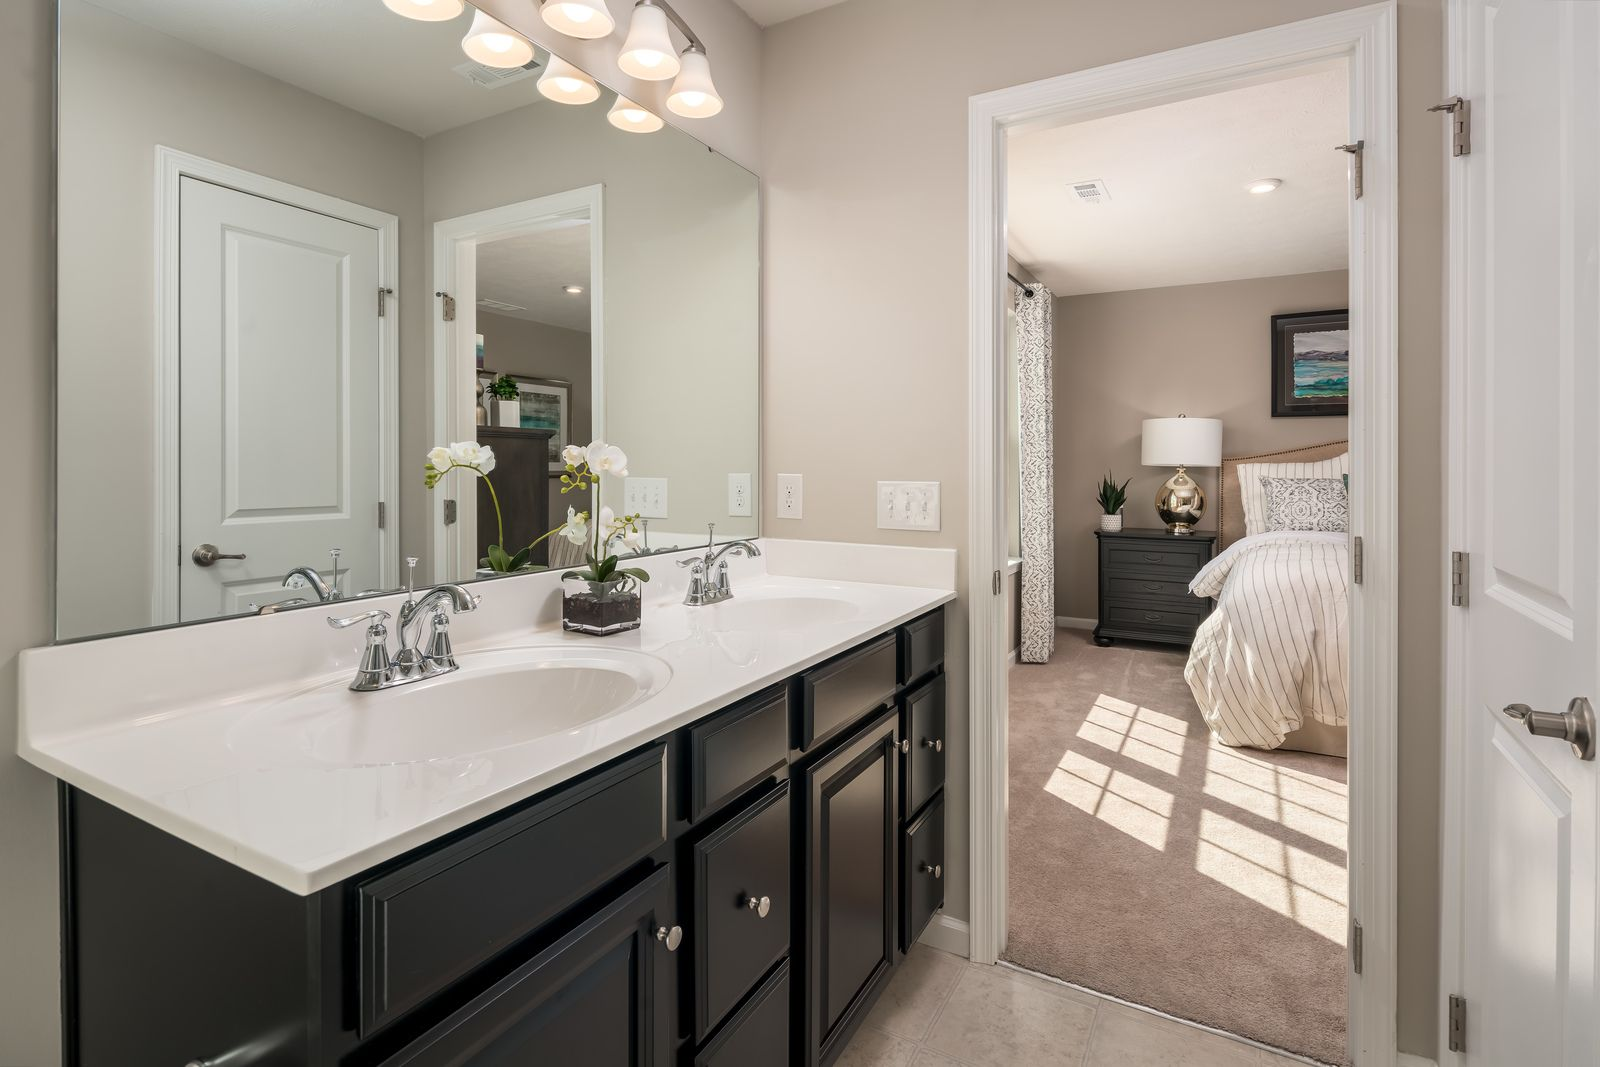 Bathroom featured in the Allegheny By Ryan Homes in Columbus, OH